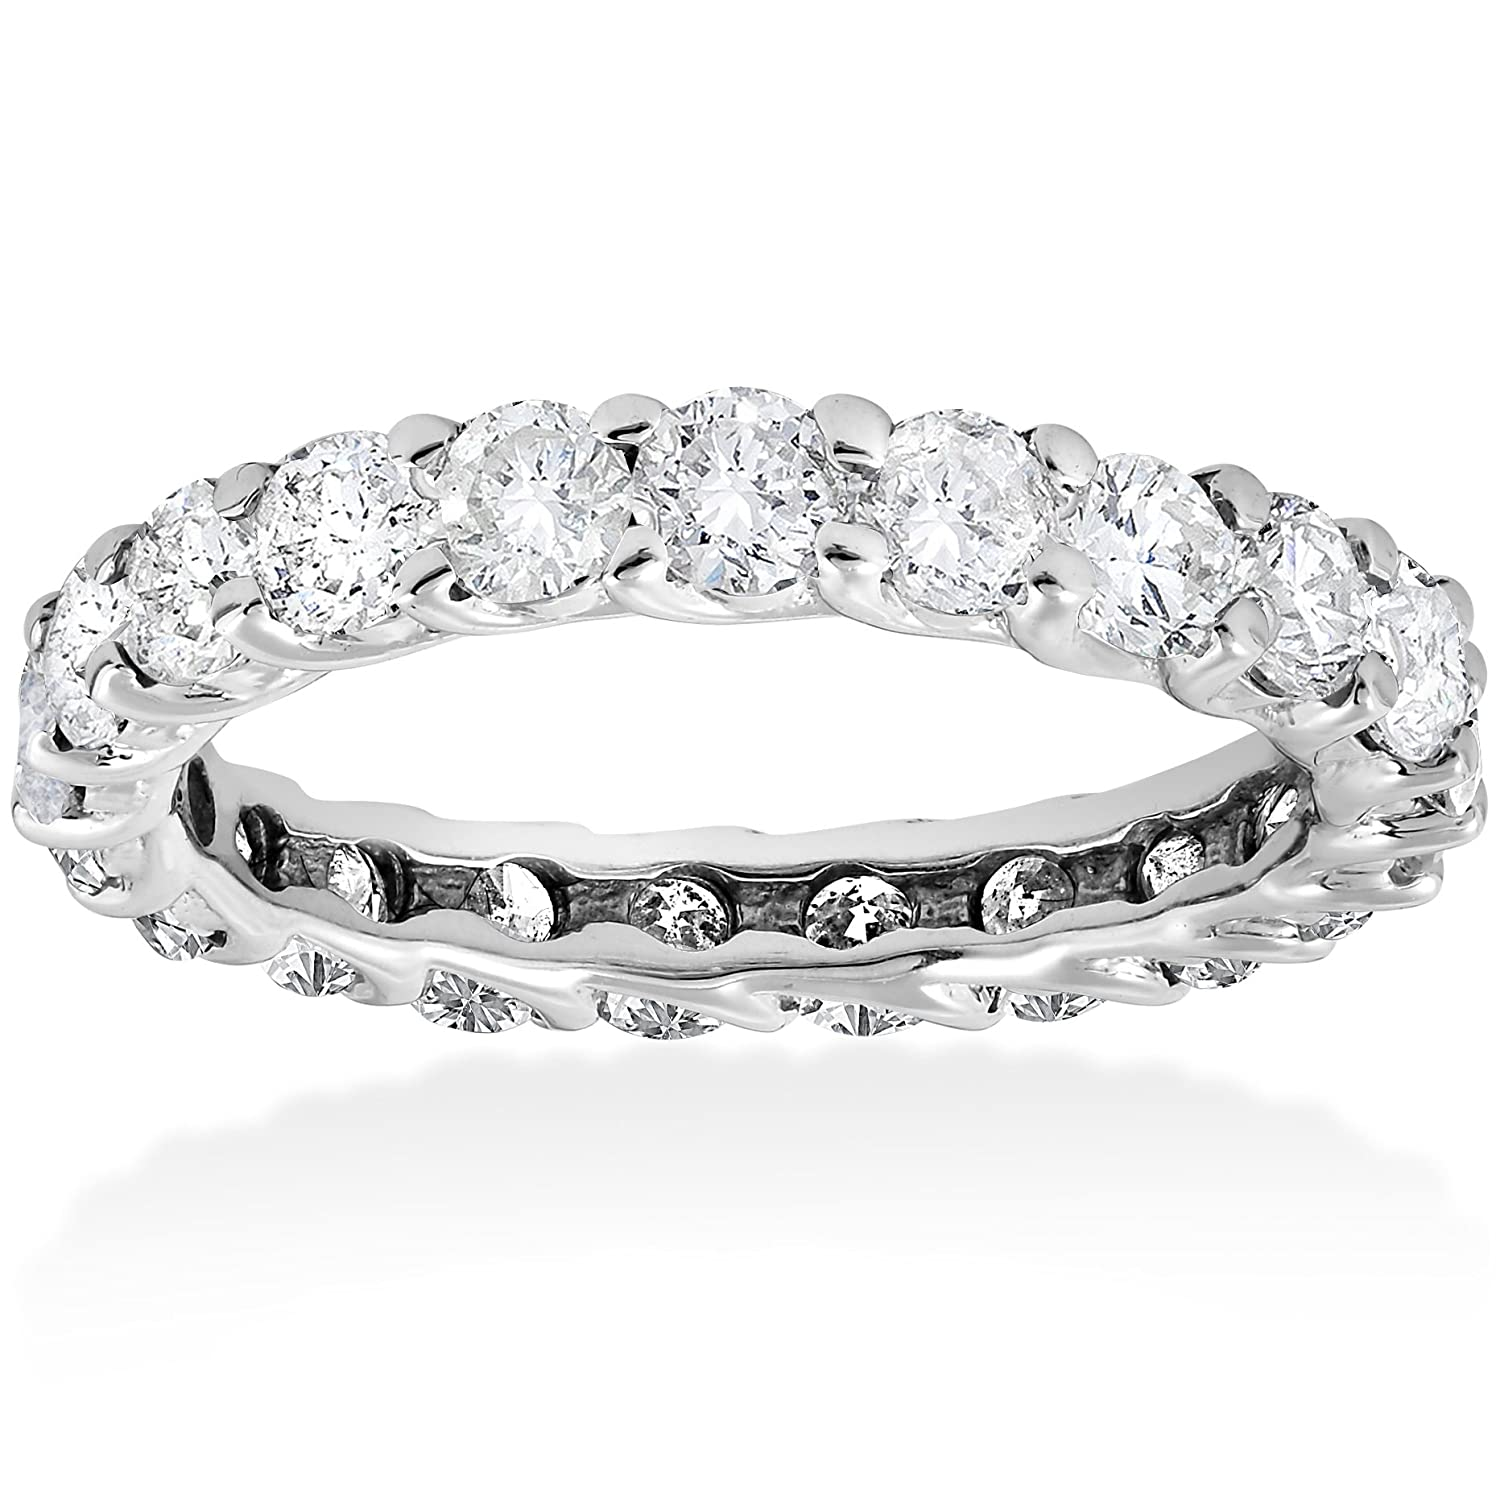 eternity node cp round baguettes rounds and set band two bands platinum diamond baguette